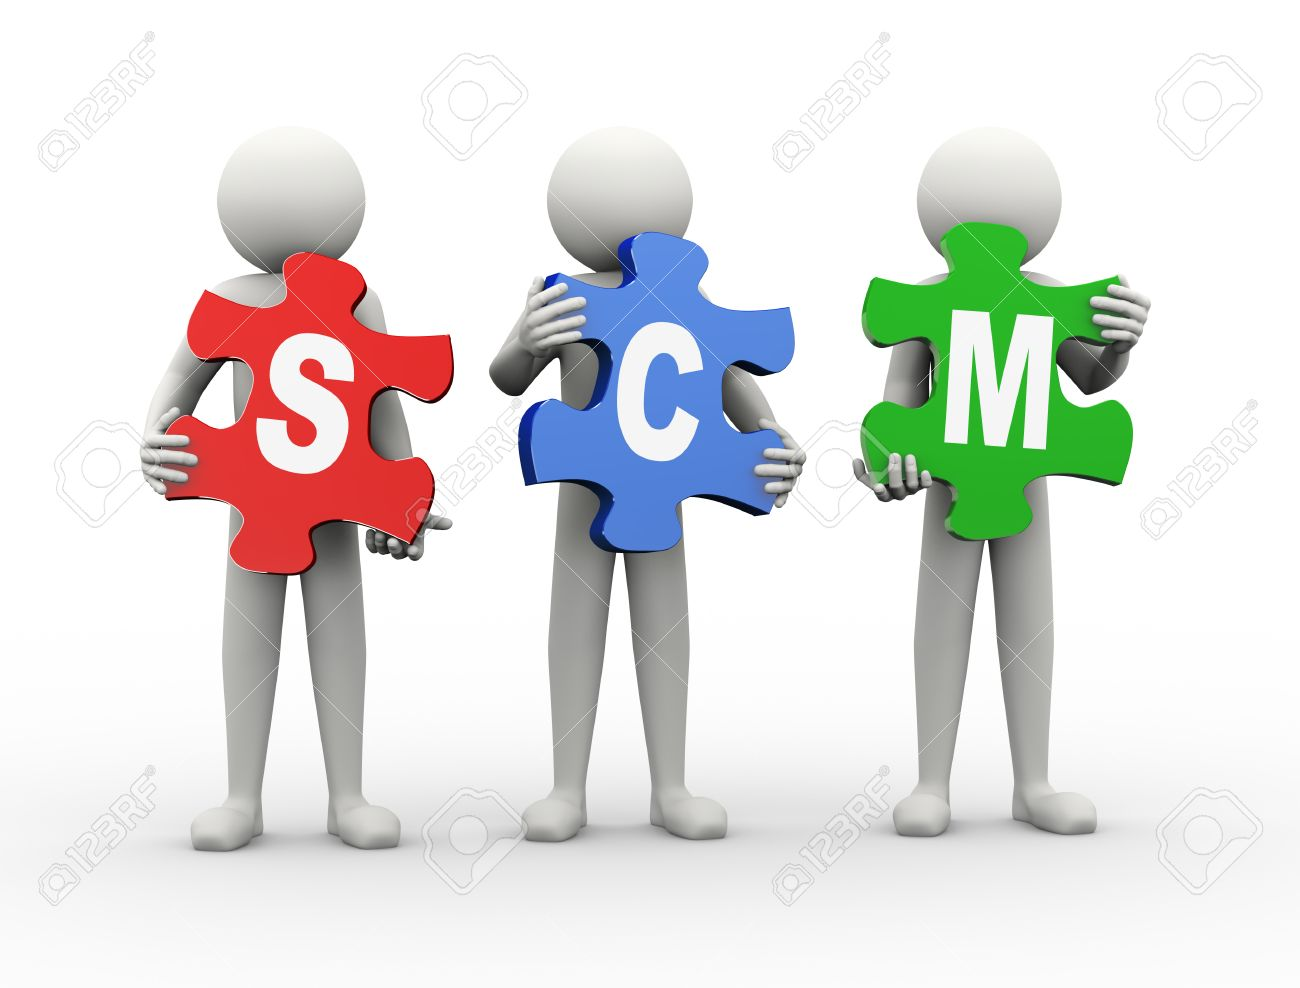 3d Rendering Of People Holding Puzzle Pieces Of Scm - Supply ...